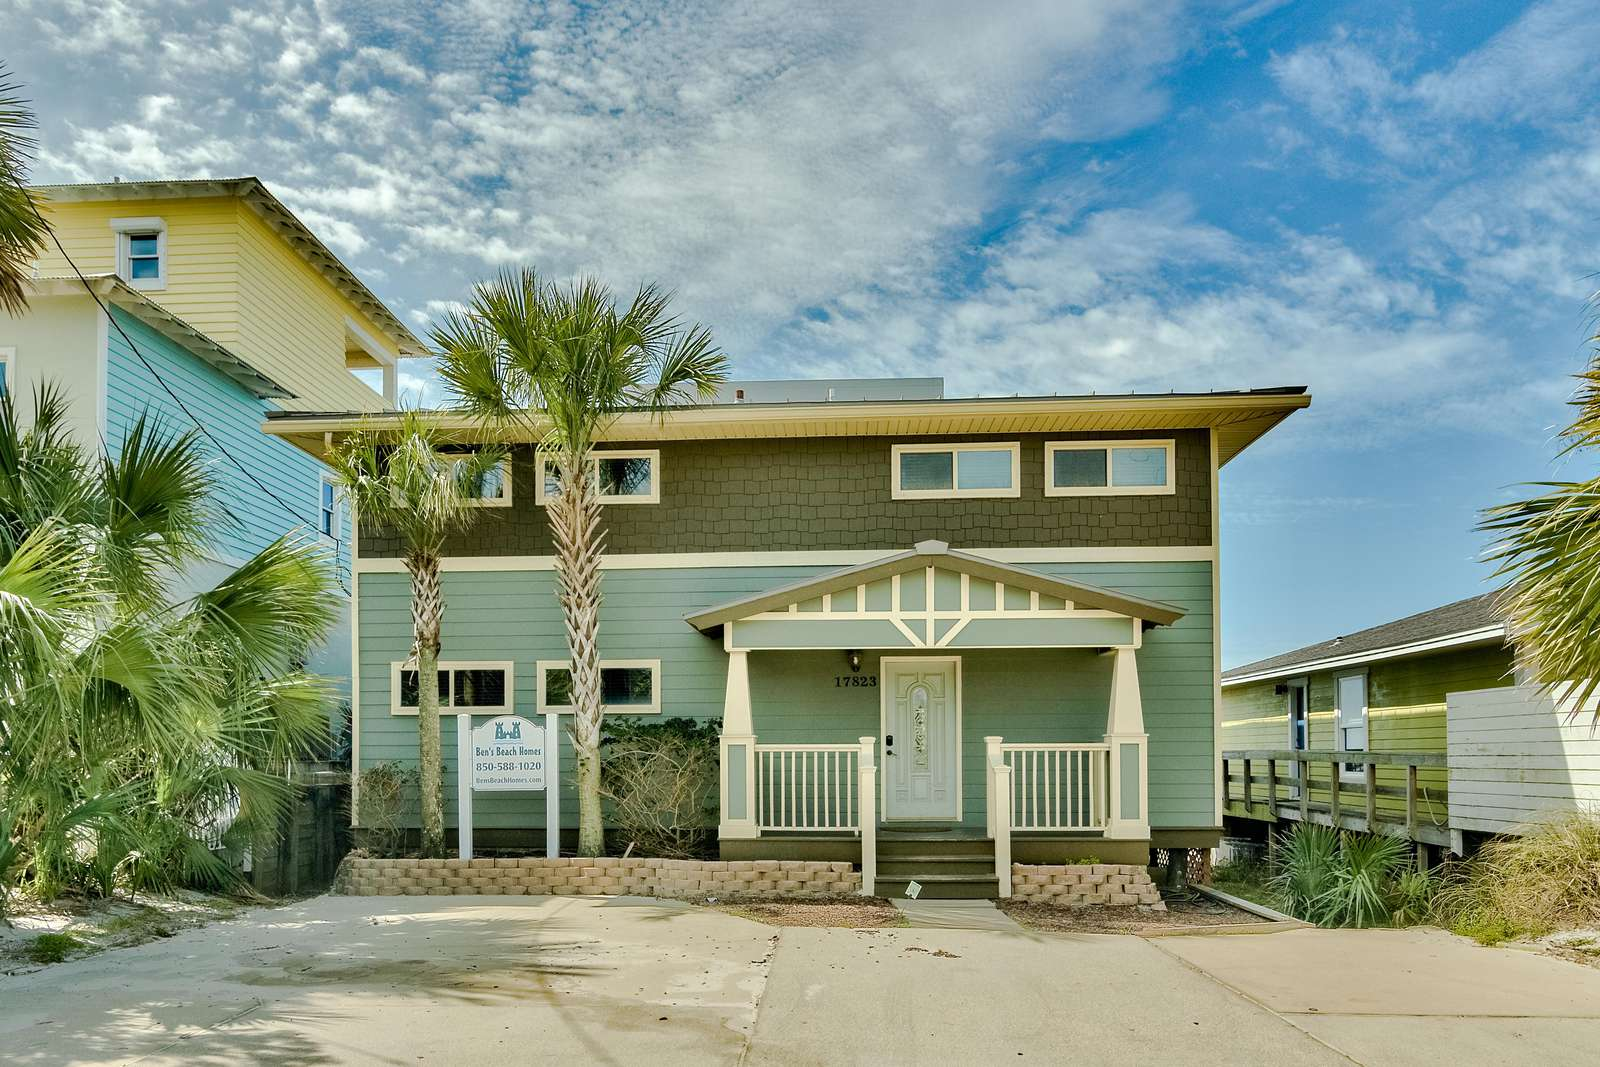 Sandy Bottoms - Fabulous West End Beach House & Hot Tub!